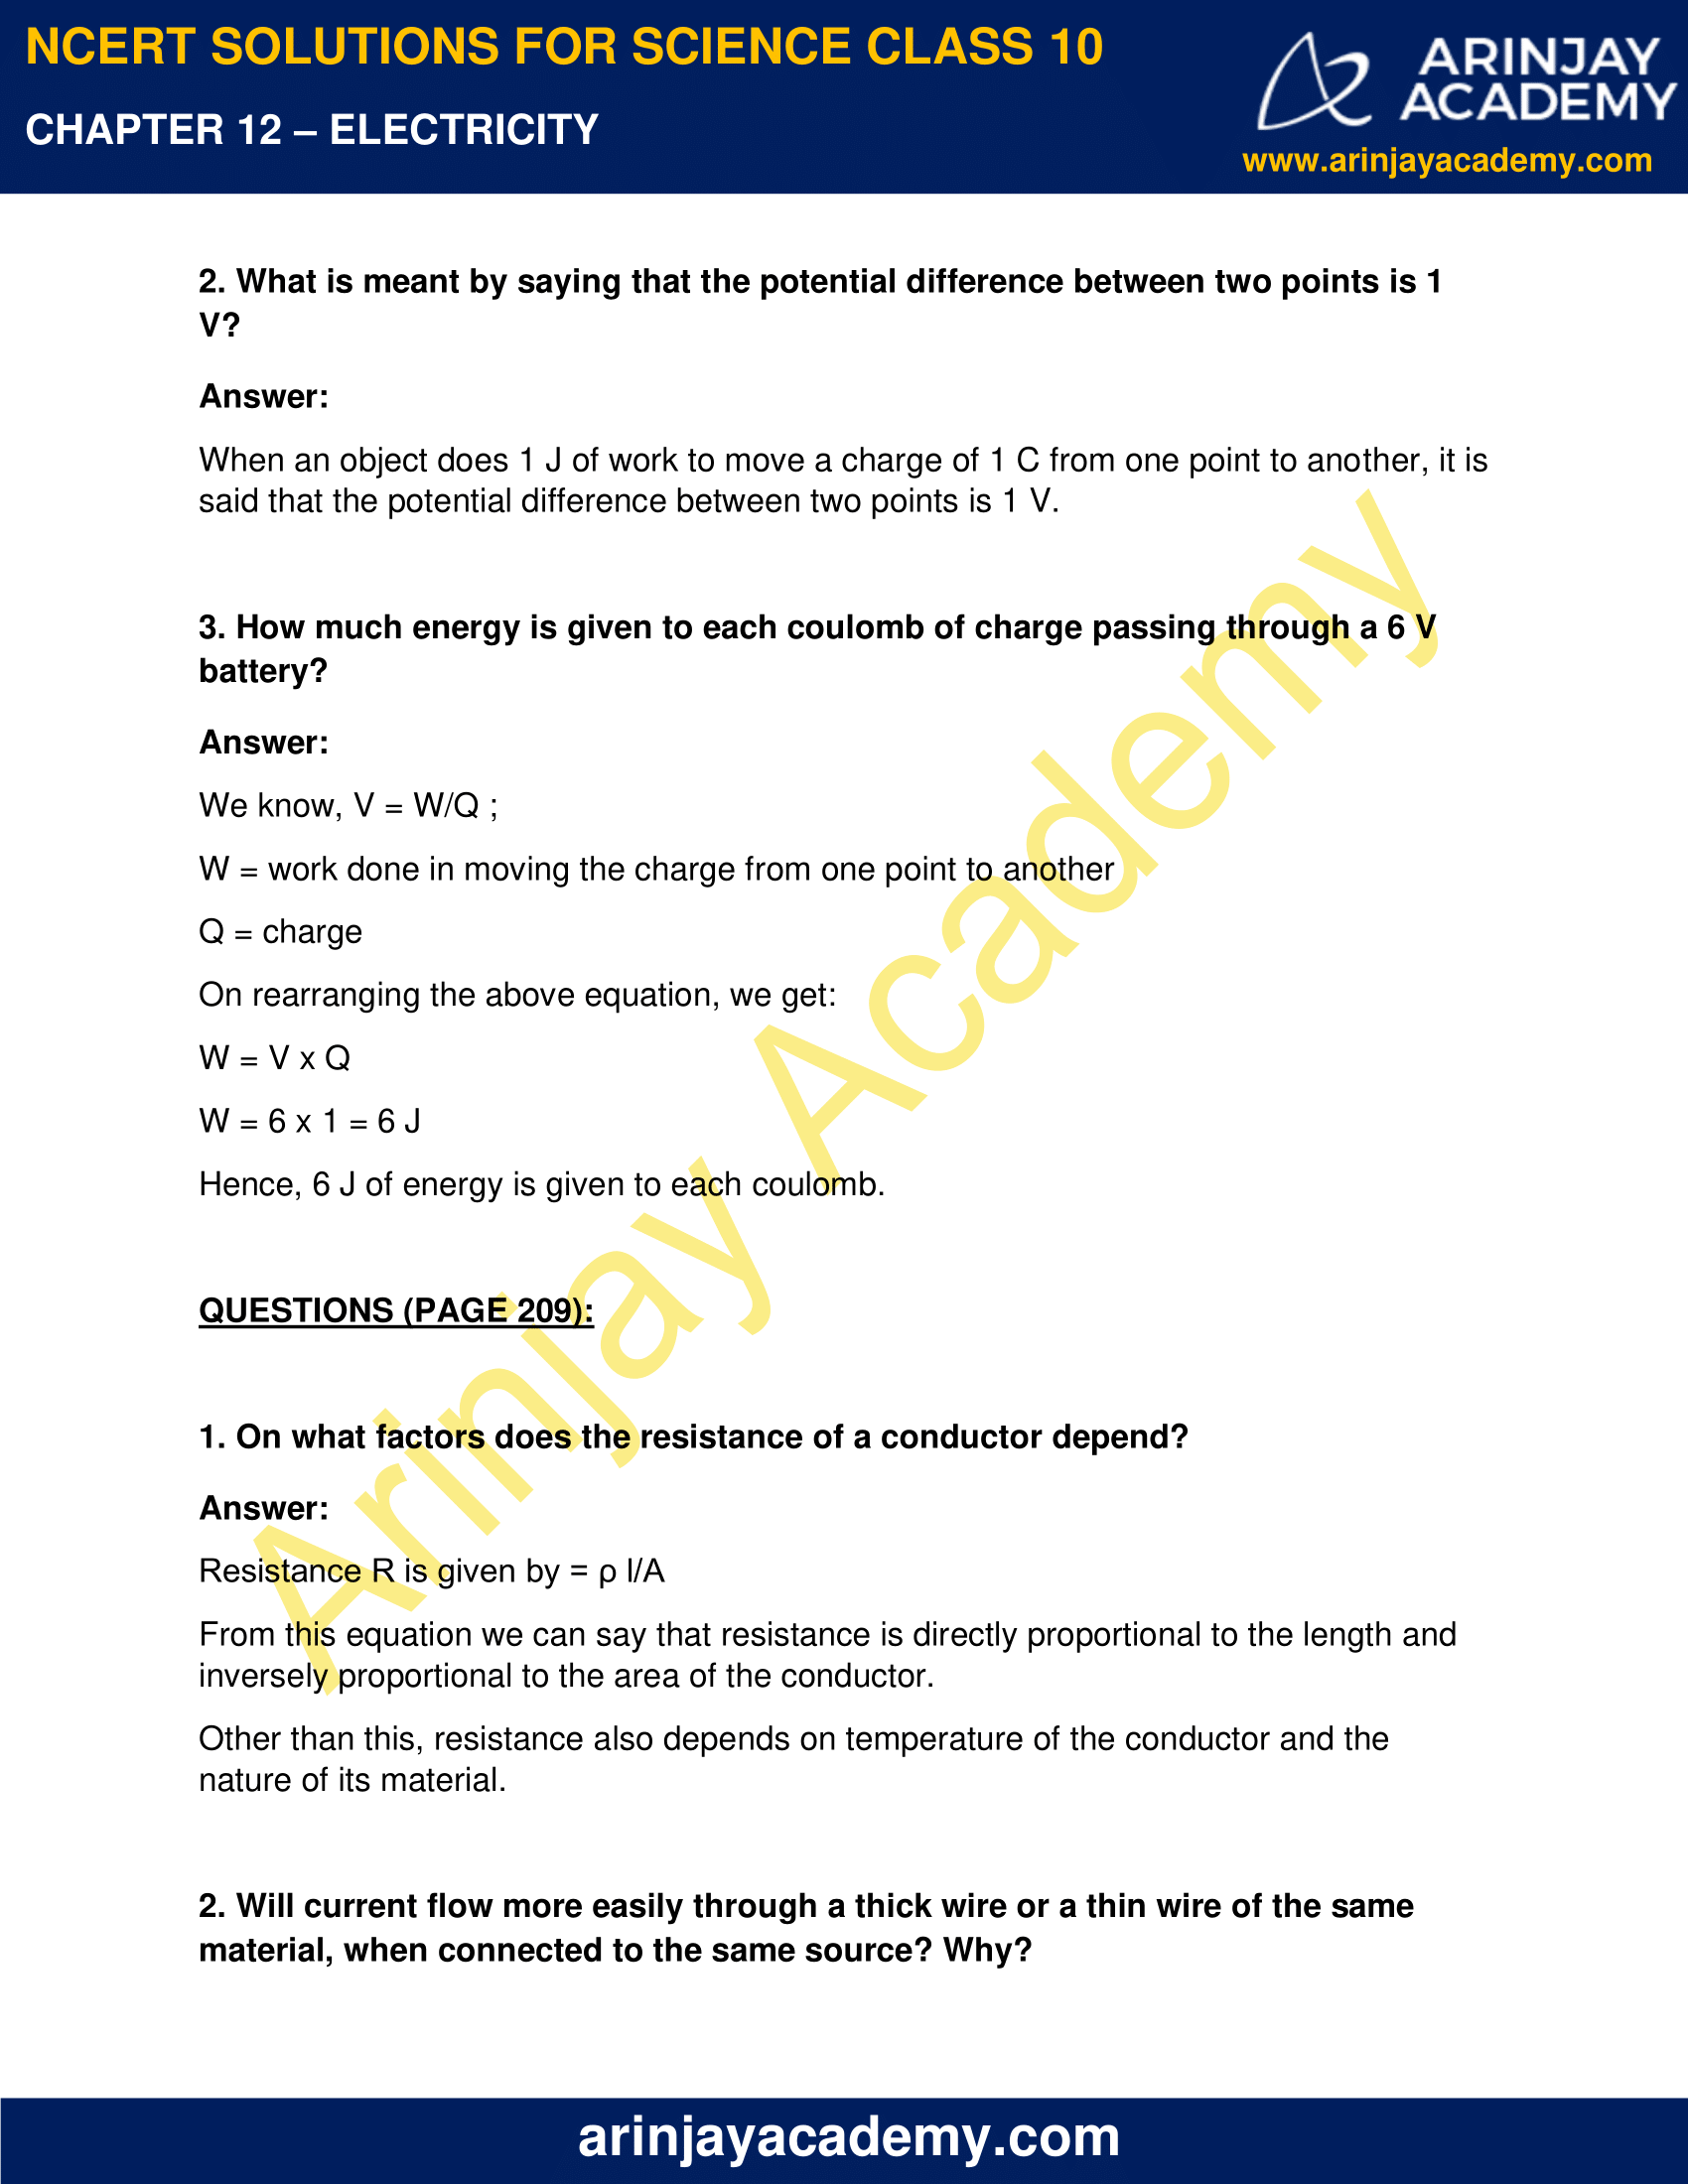 NCERT Solutions for Class 10 Science Chapter 12 Electricity image 2